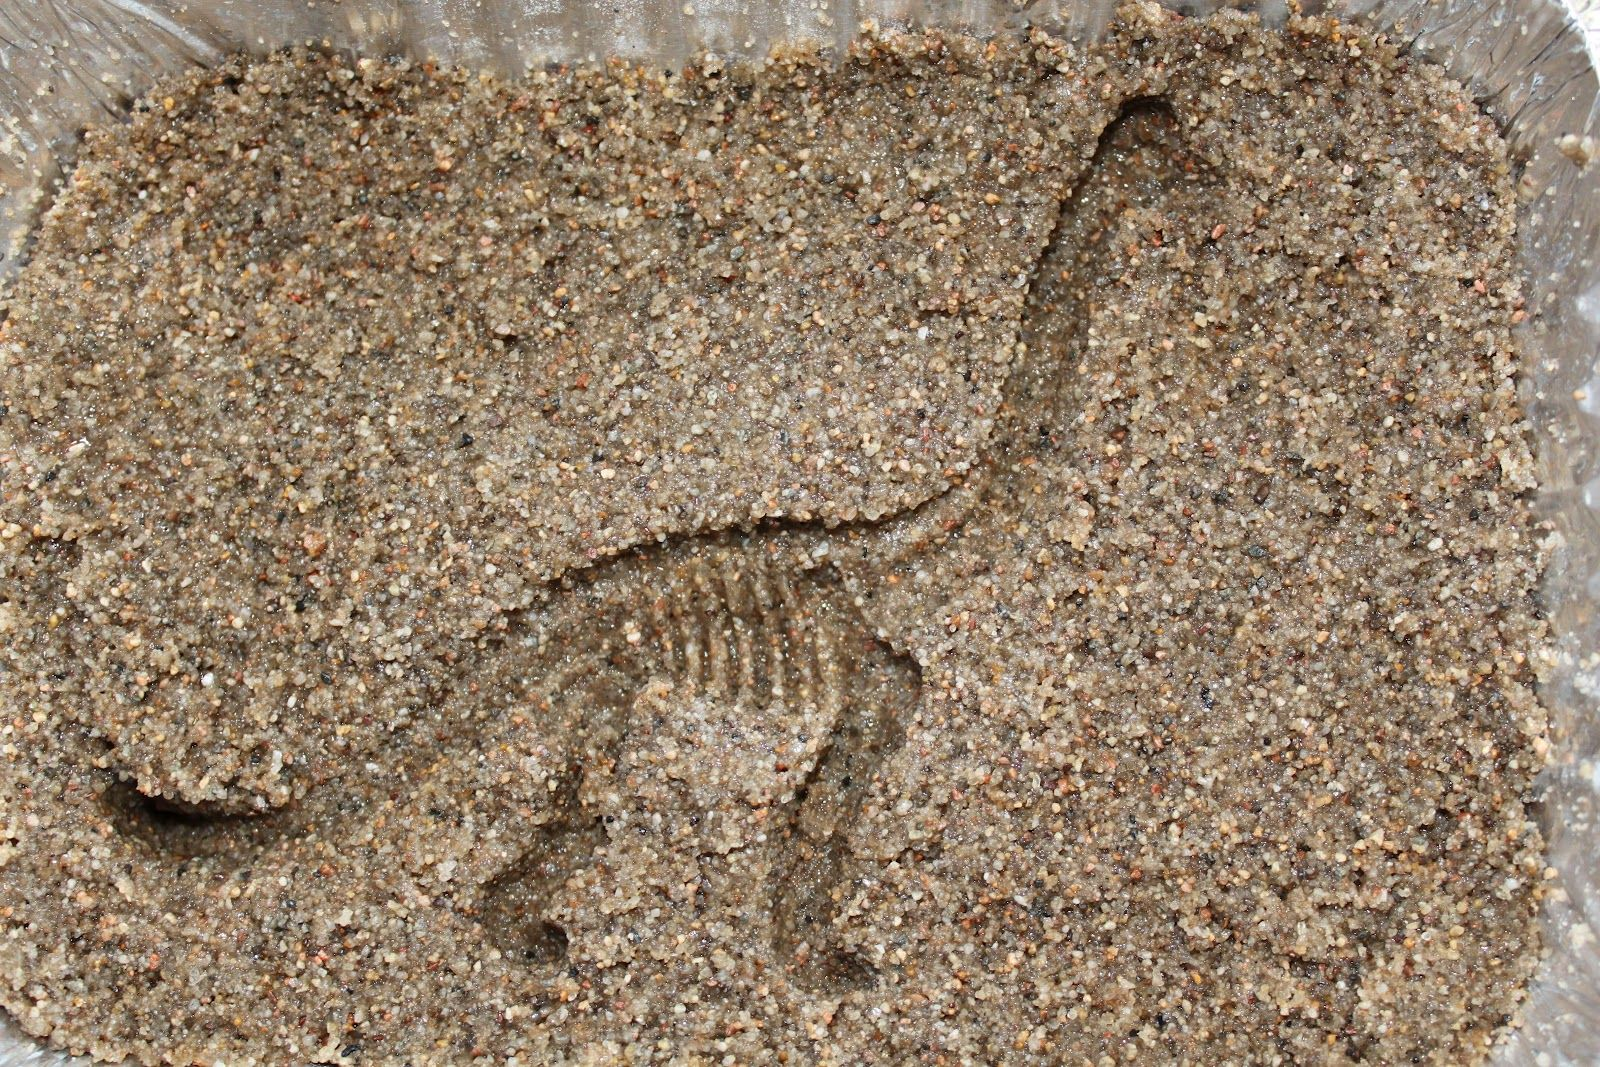 making dinosaur fossil imprints with plastic dinosaurs